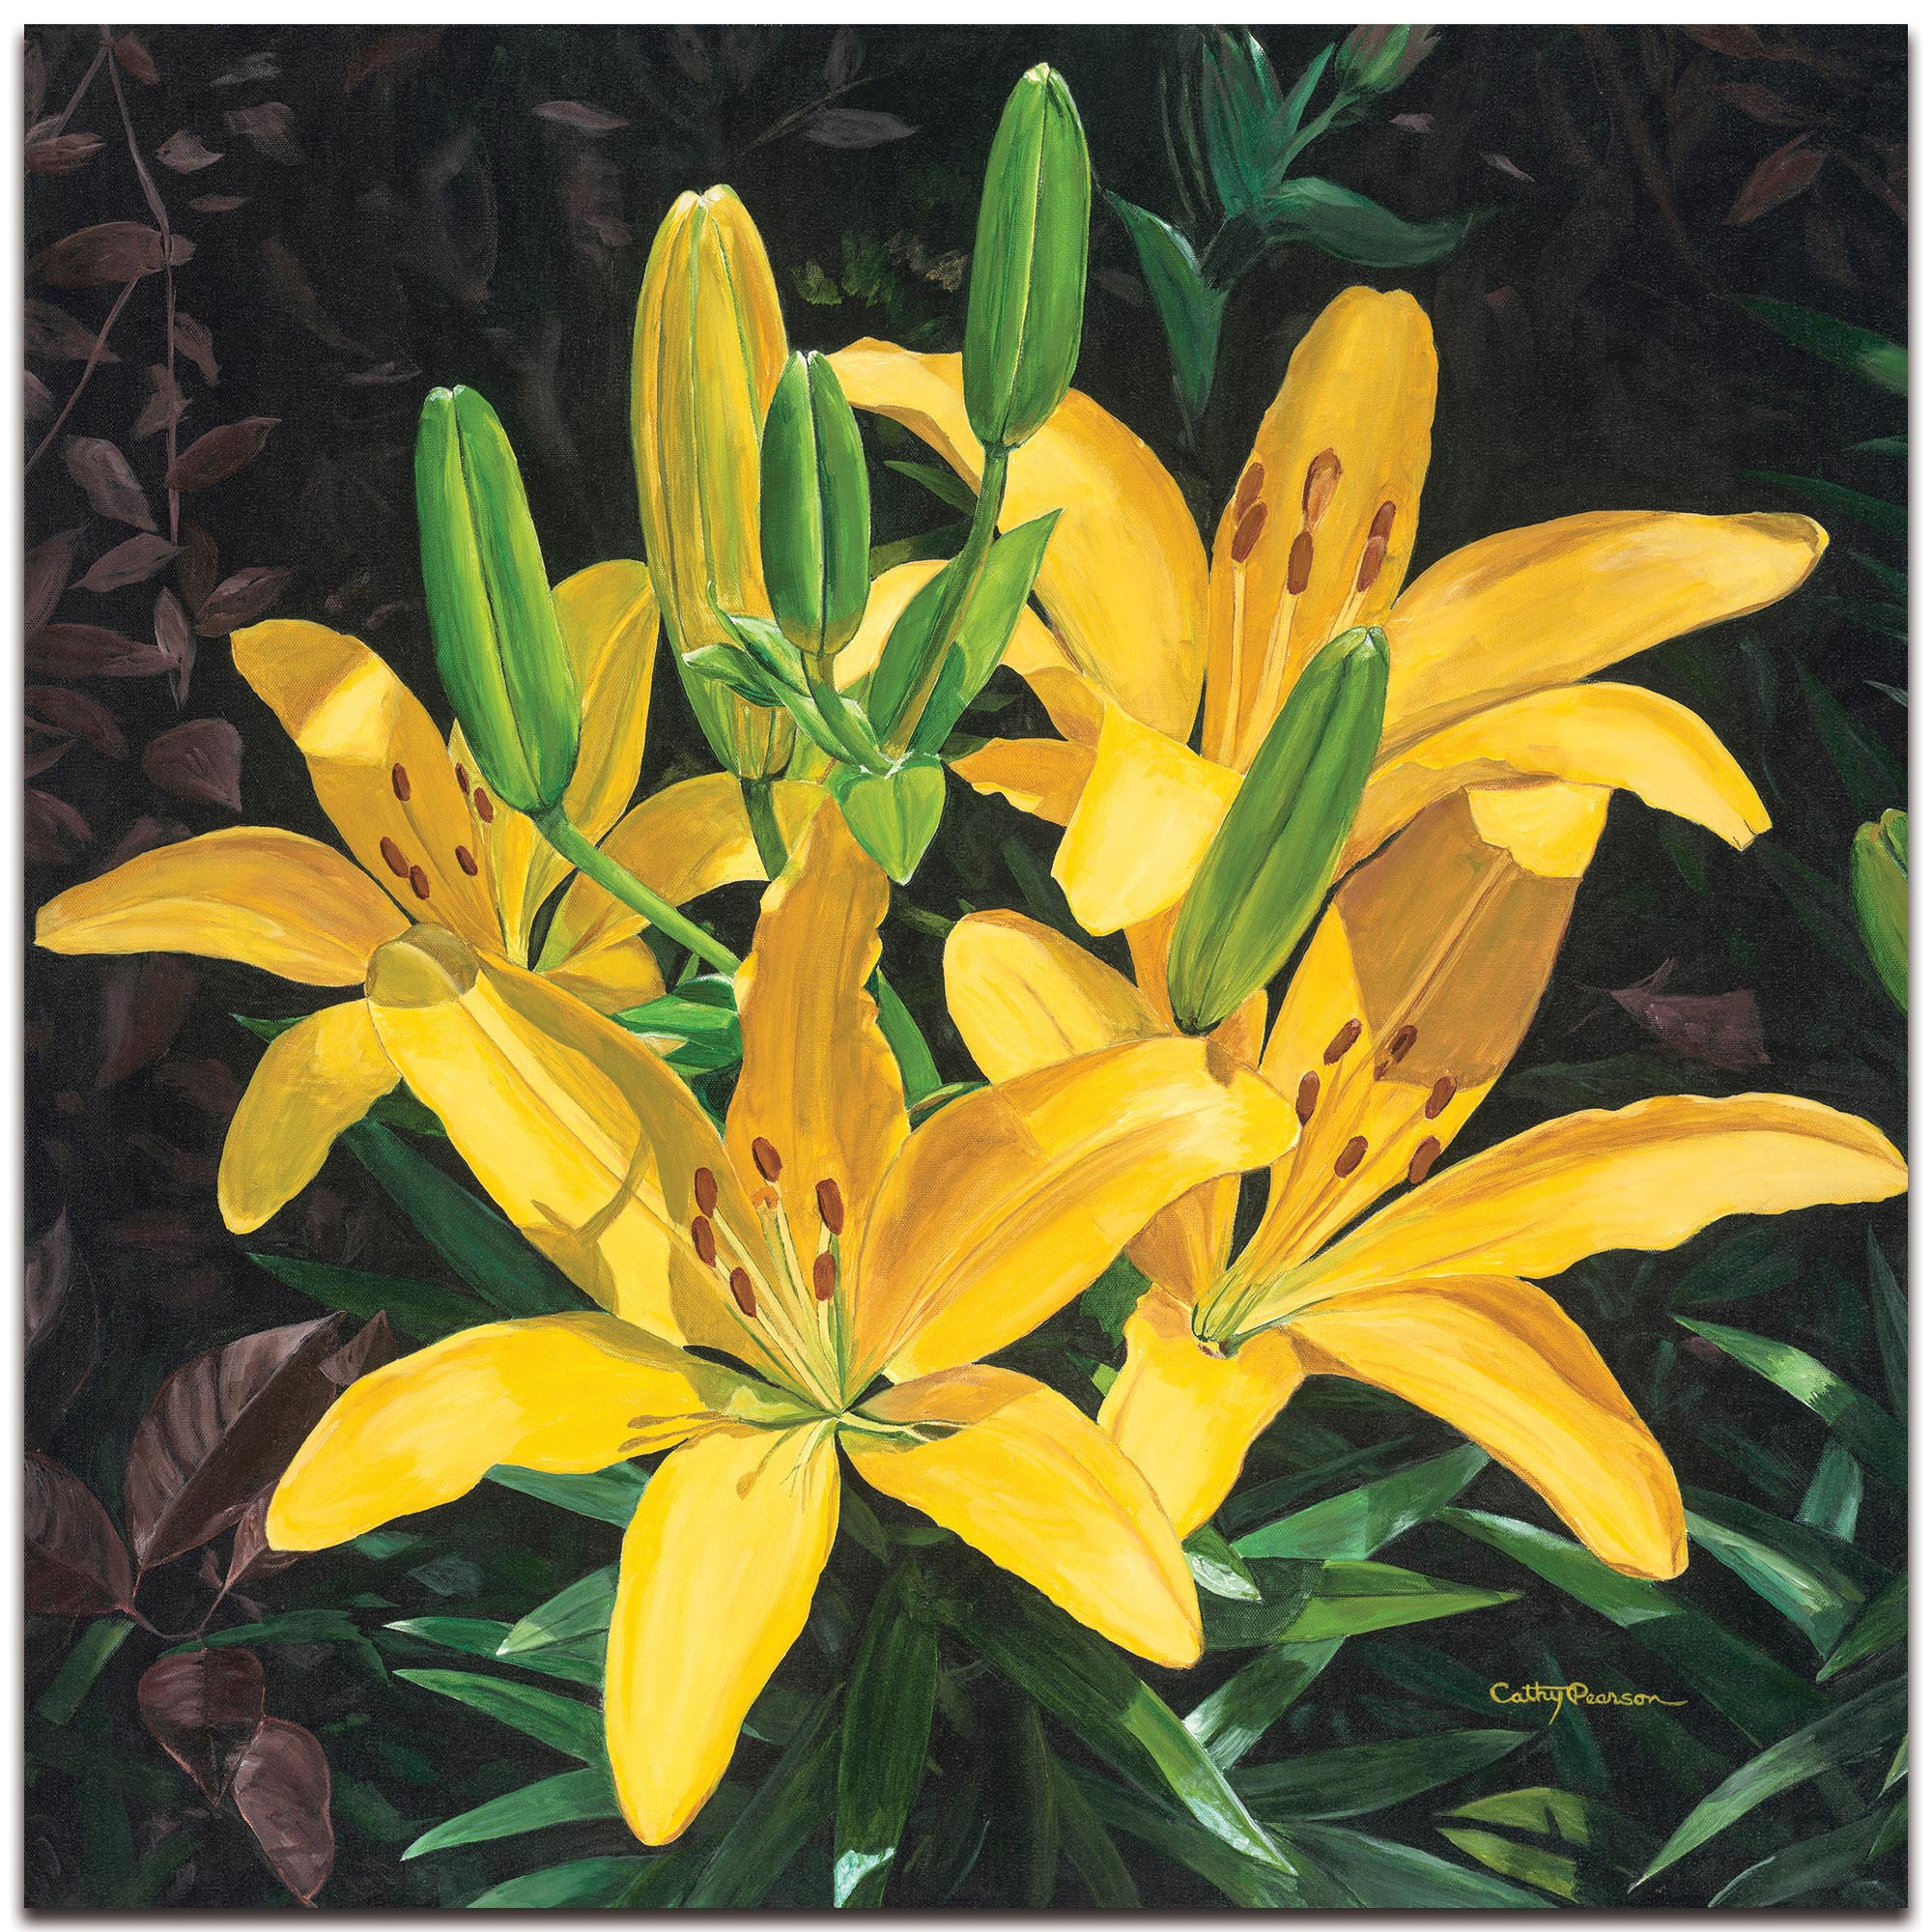 Metal Art Studio - Yellow Lilies by Cathy Pearson - Traditional Wall ...